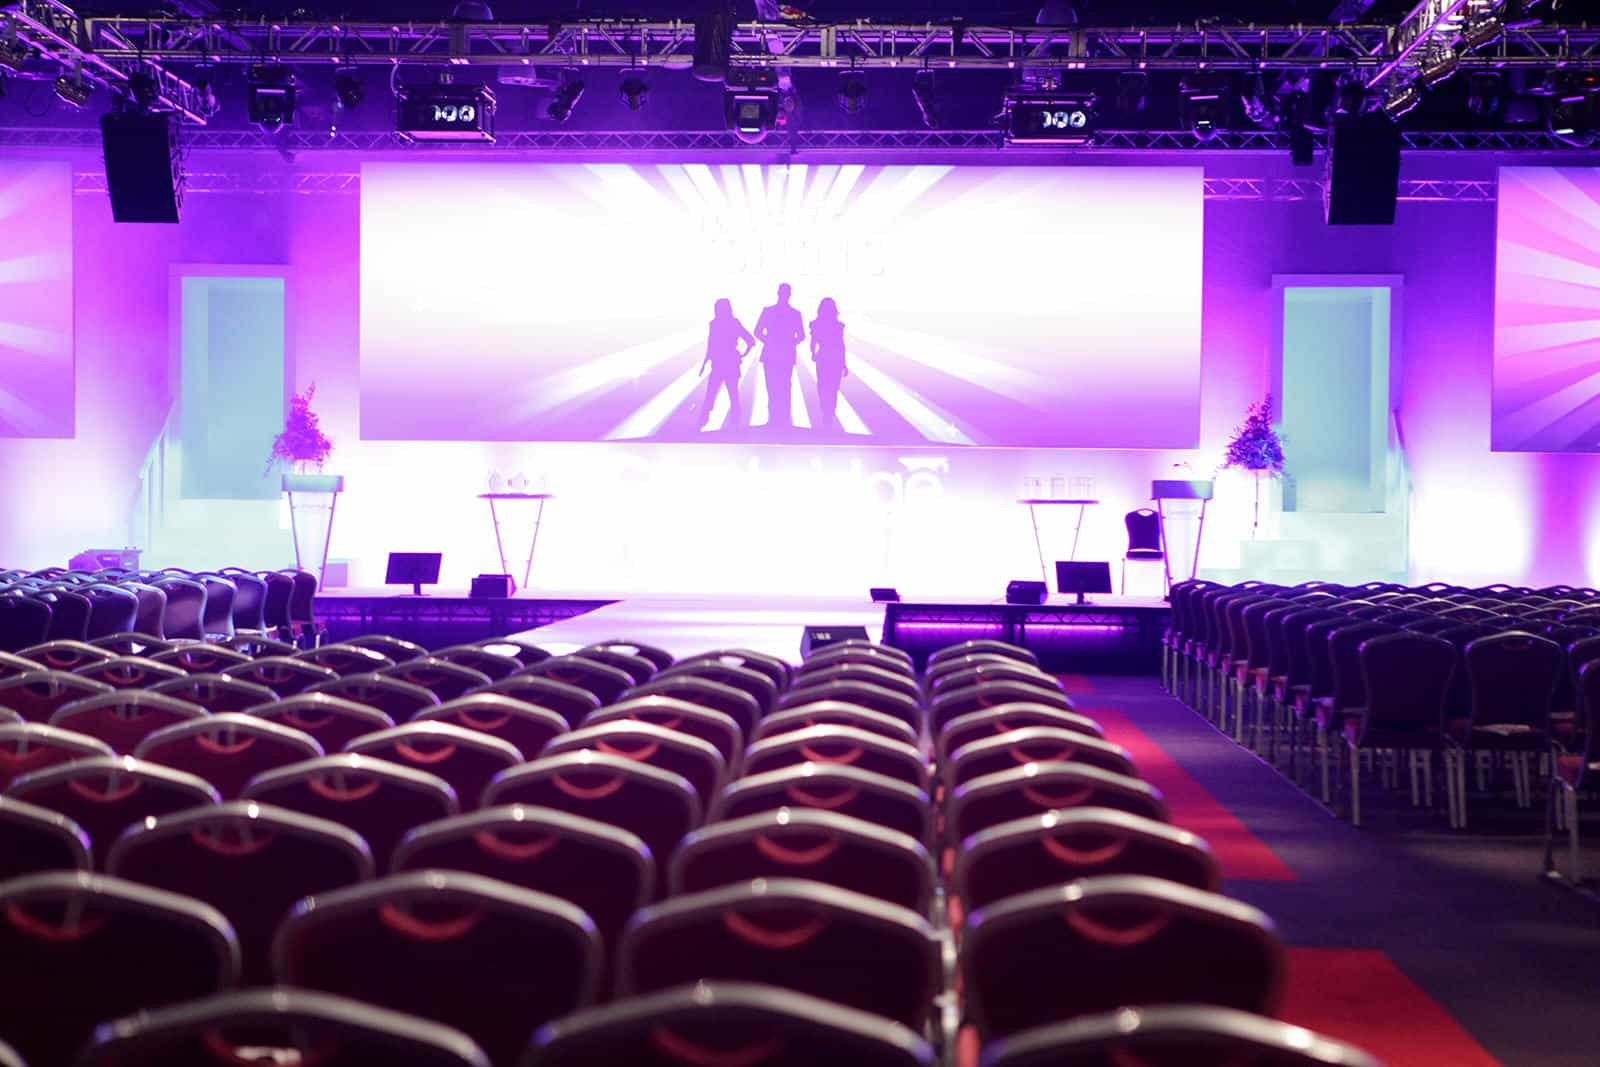 Typical large conference setting